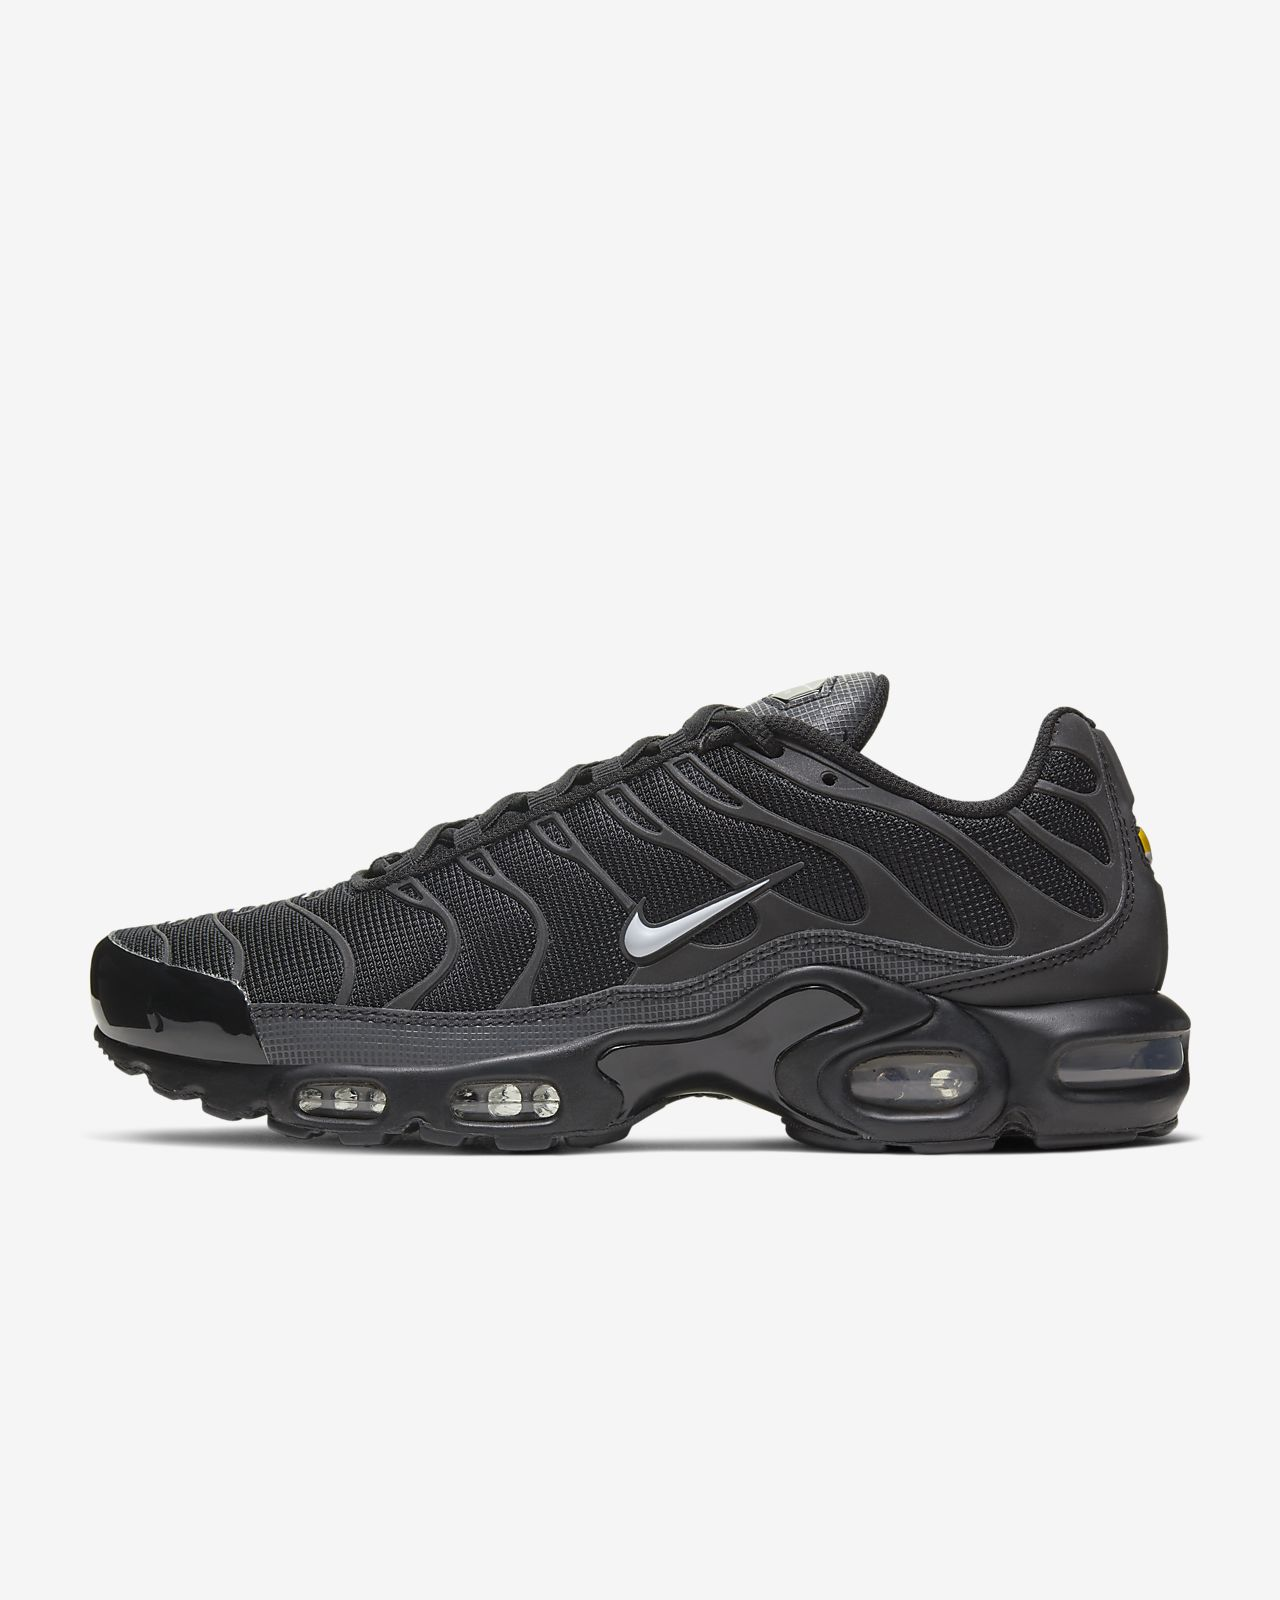 Nike Air Max Plus sko til herre